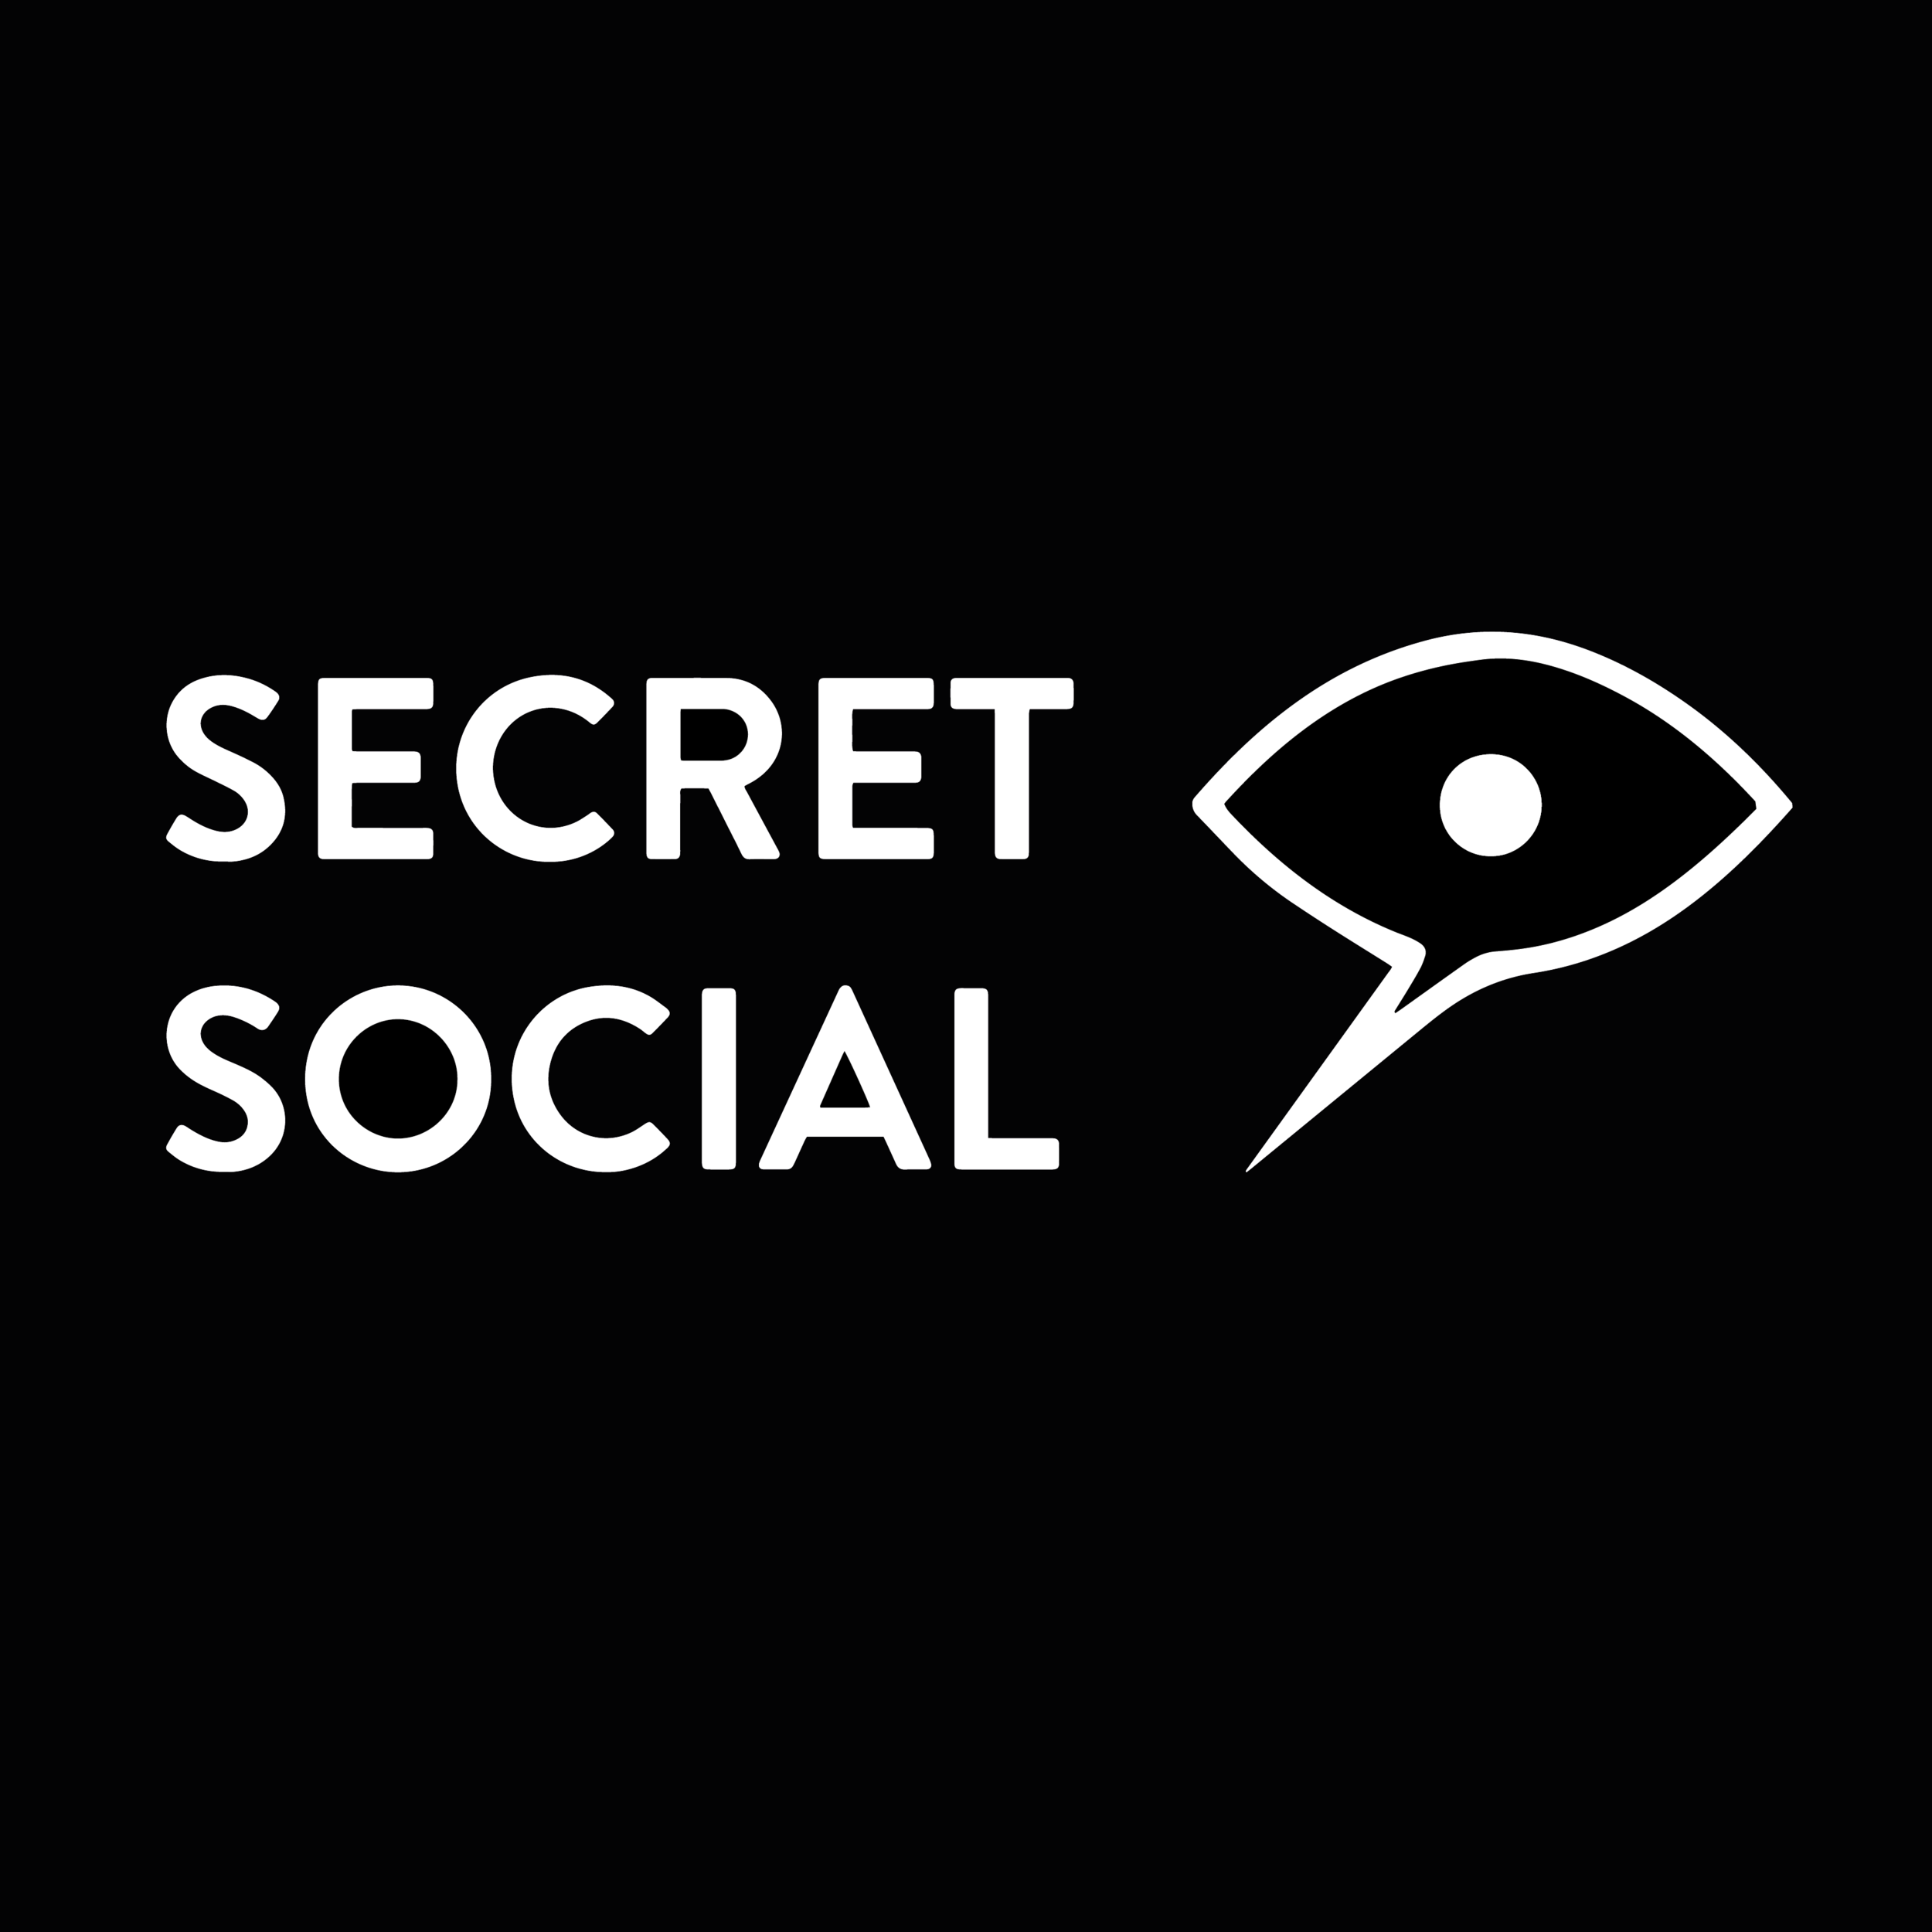 Secret Social - Branding IdentityDigital DesignEnvironmental GraphicsMarketing